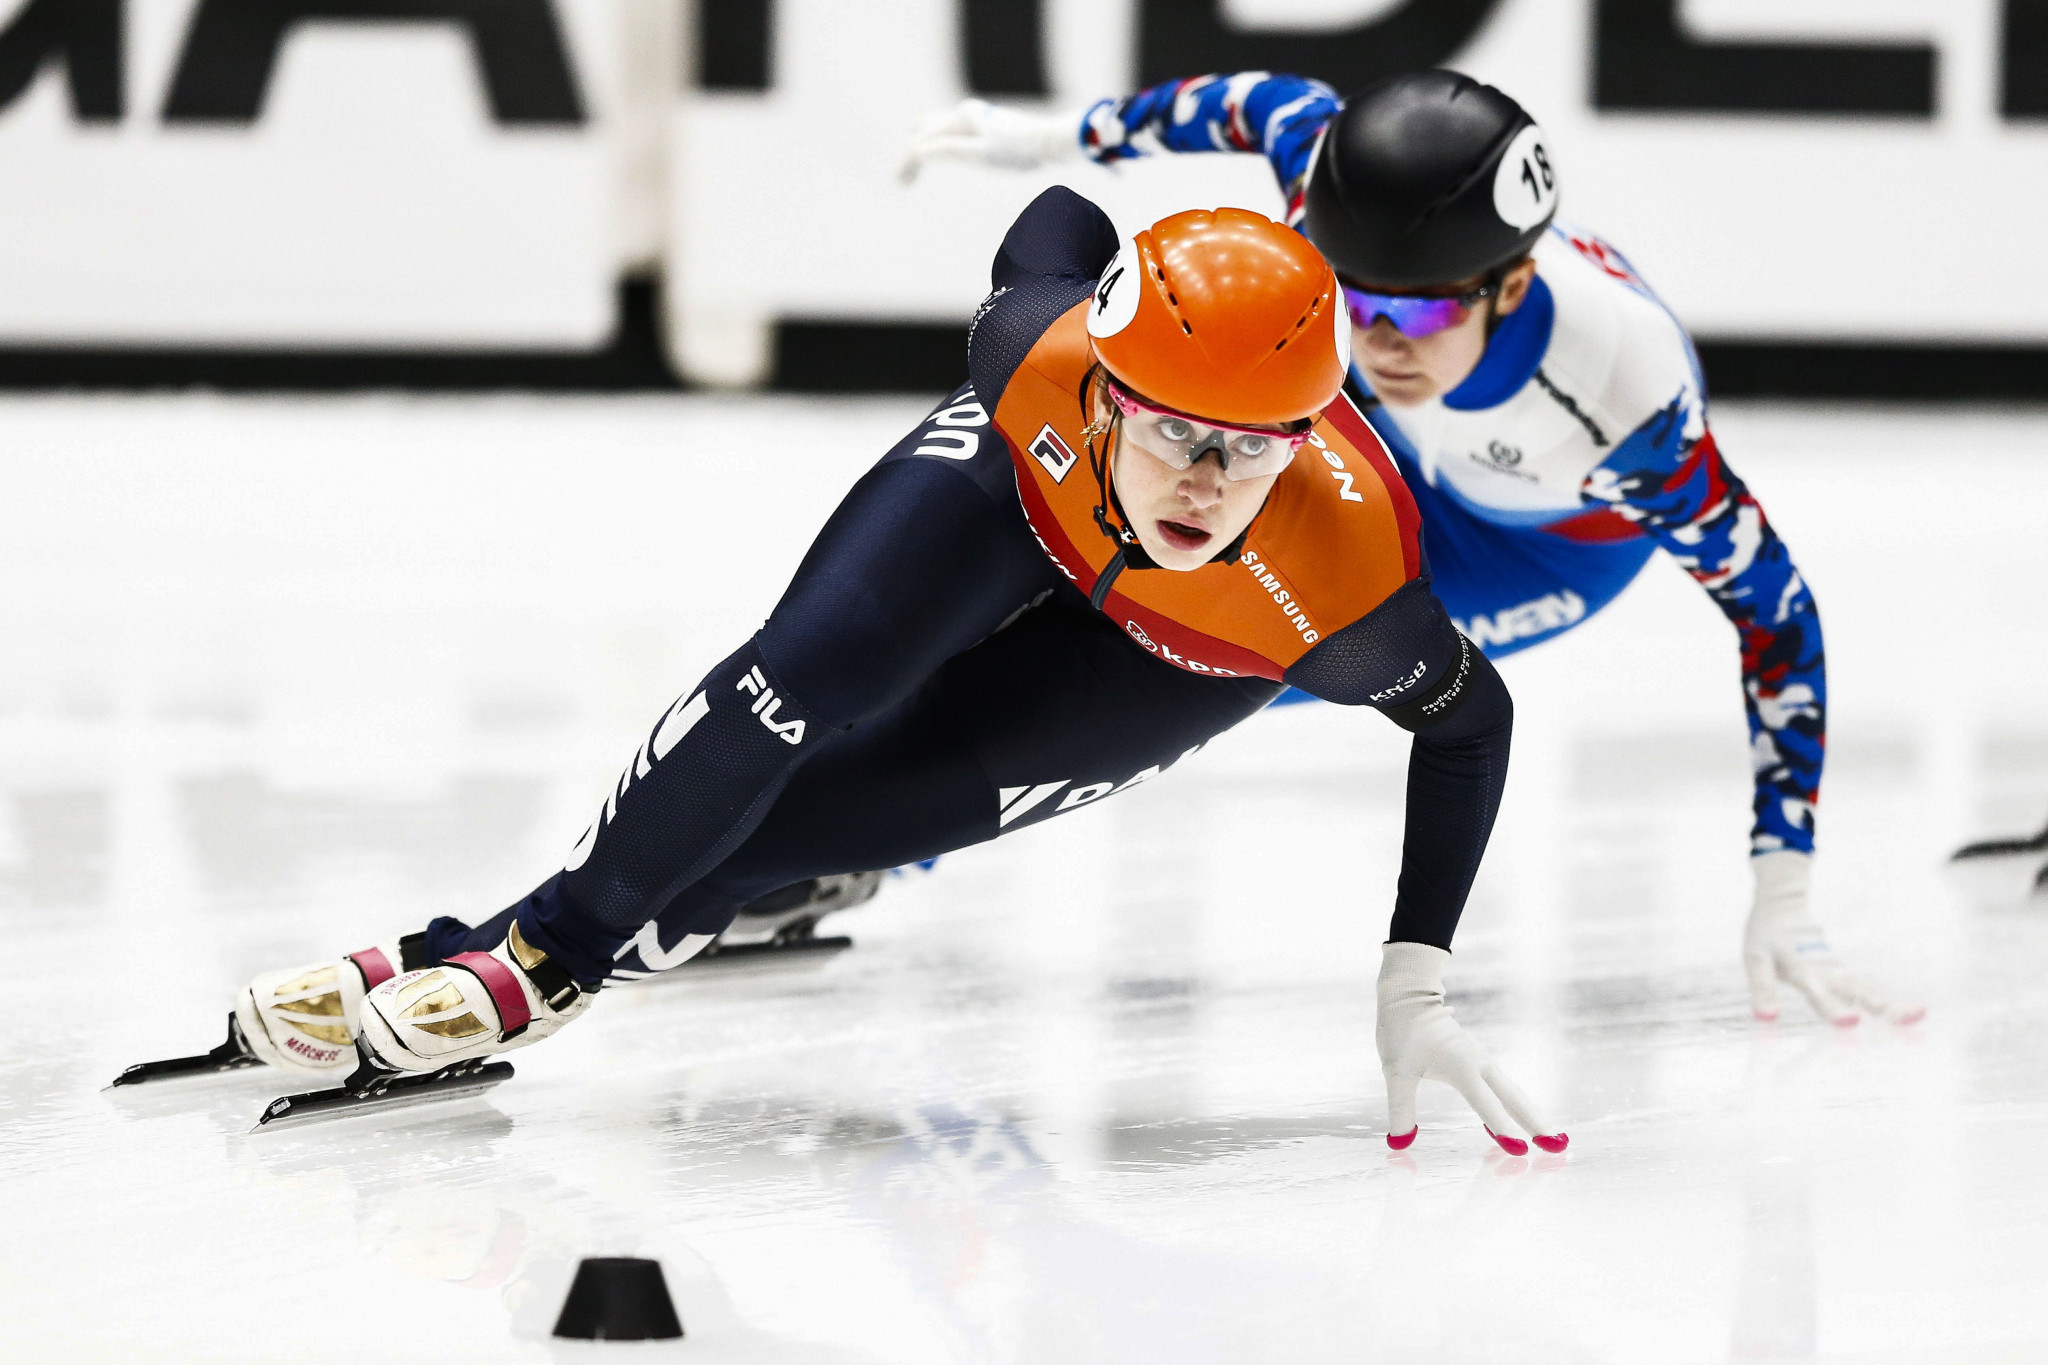 Schulting earns two more golds as ISU Short Track European Championships conclude